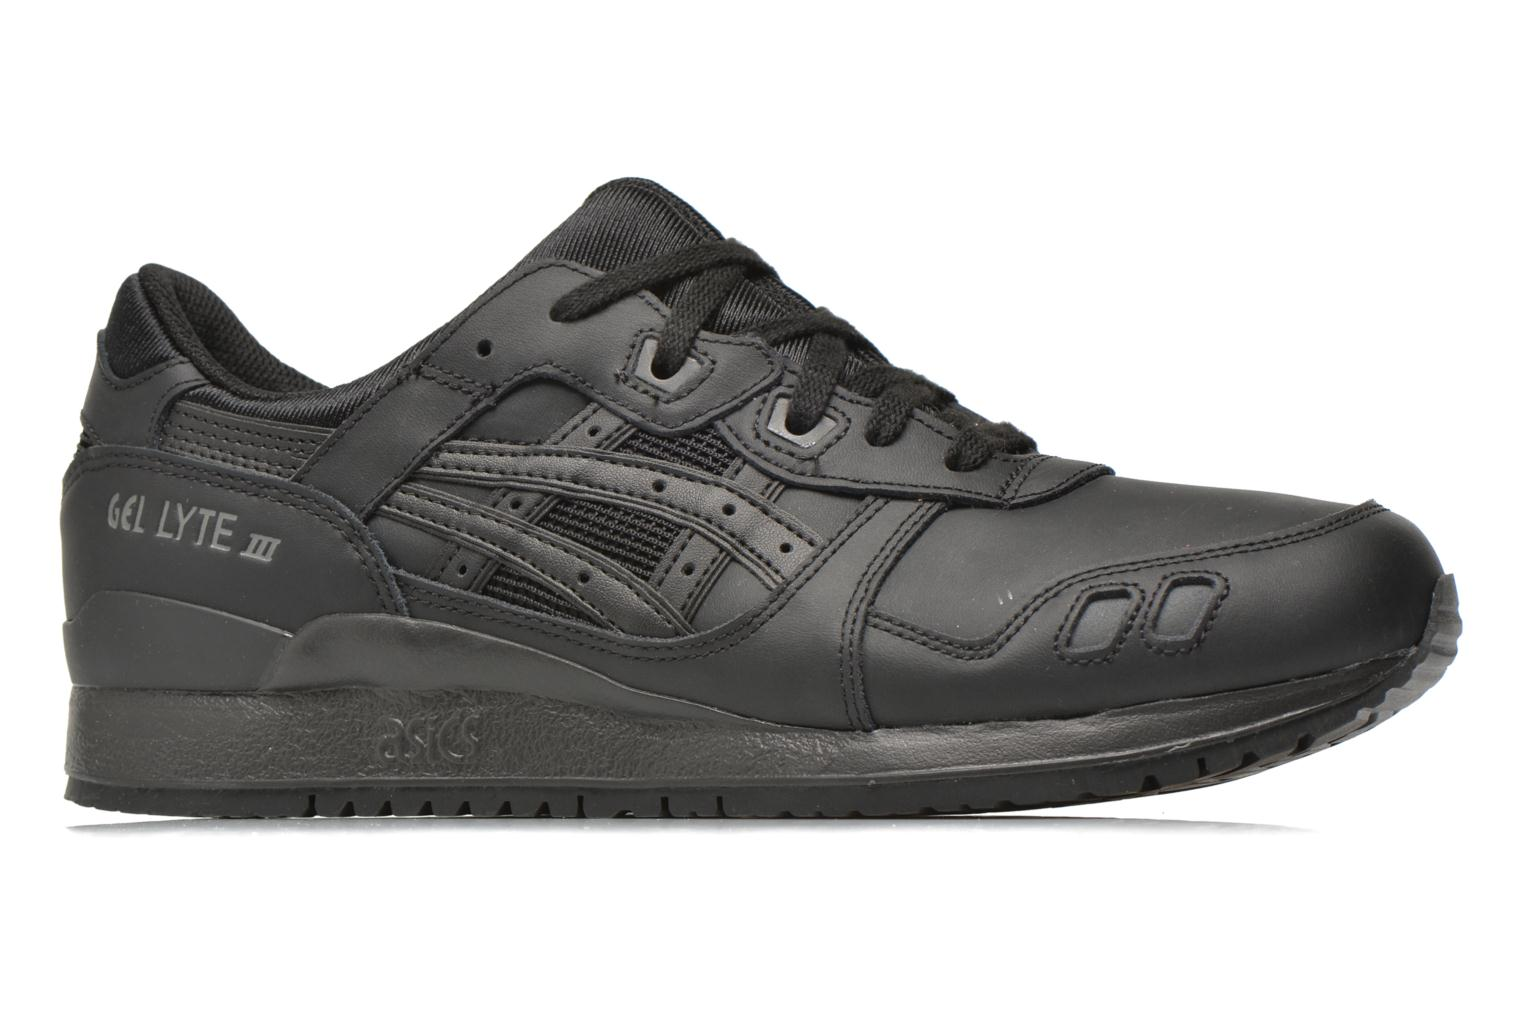 Gel-lyte III Black1/Black